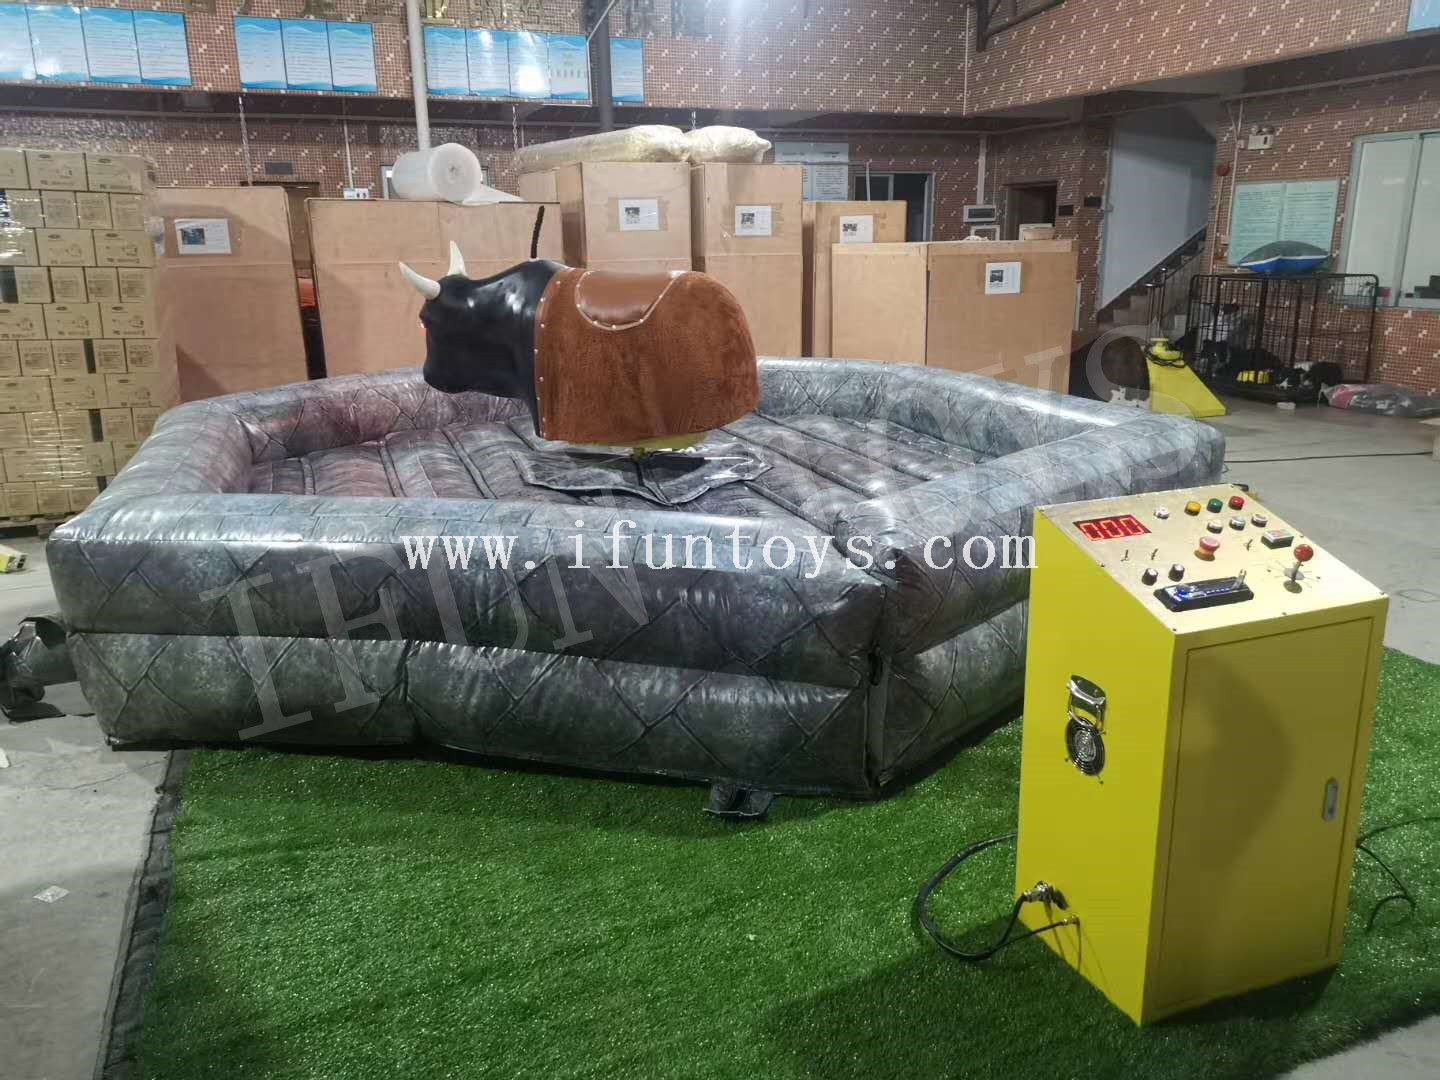 Inflatable Mechanical Bull Riding Games